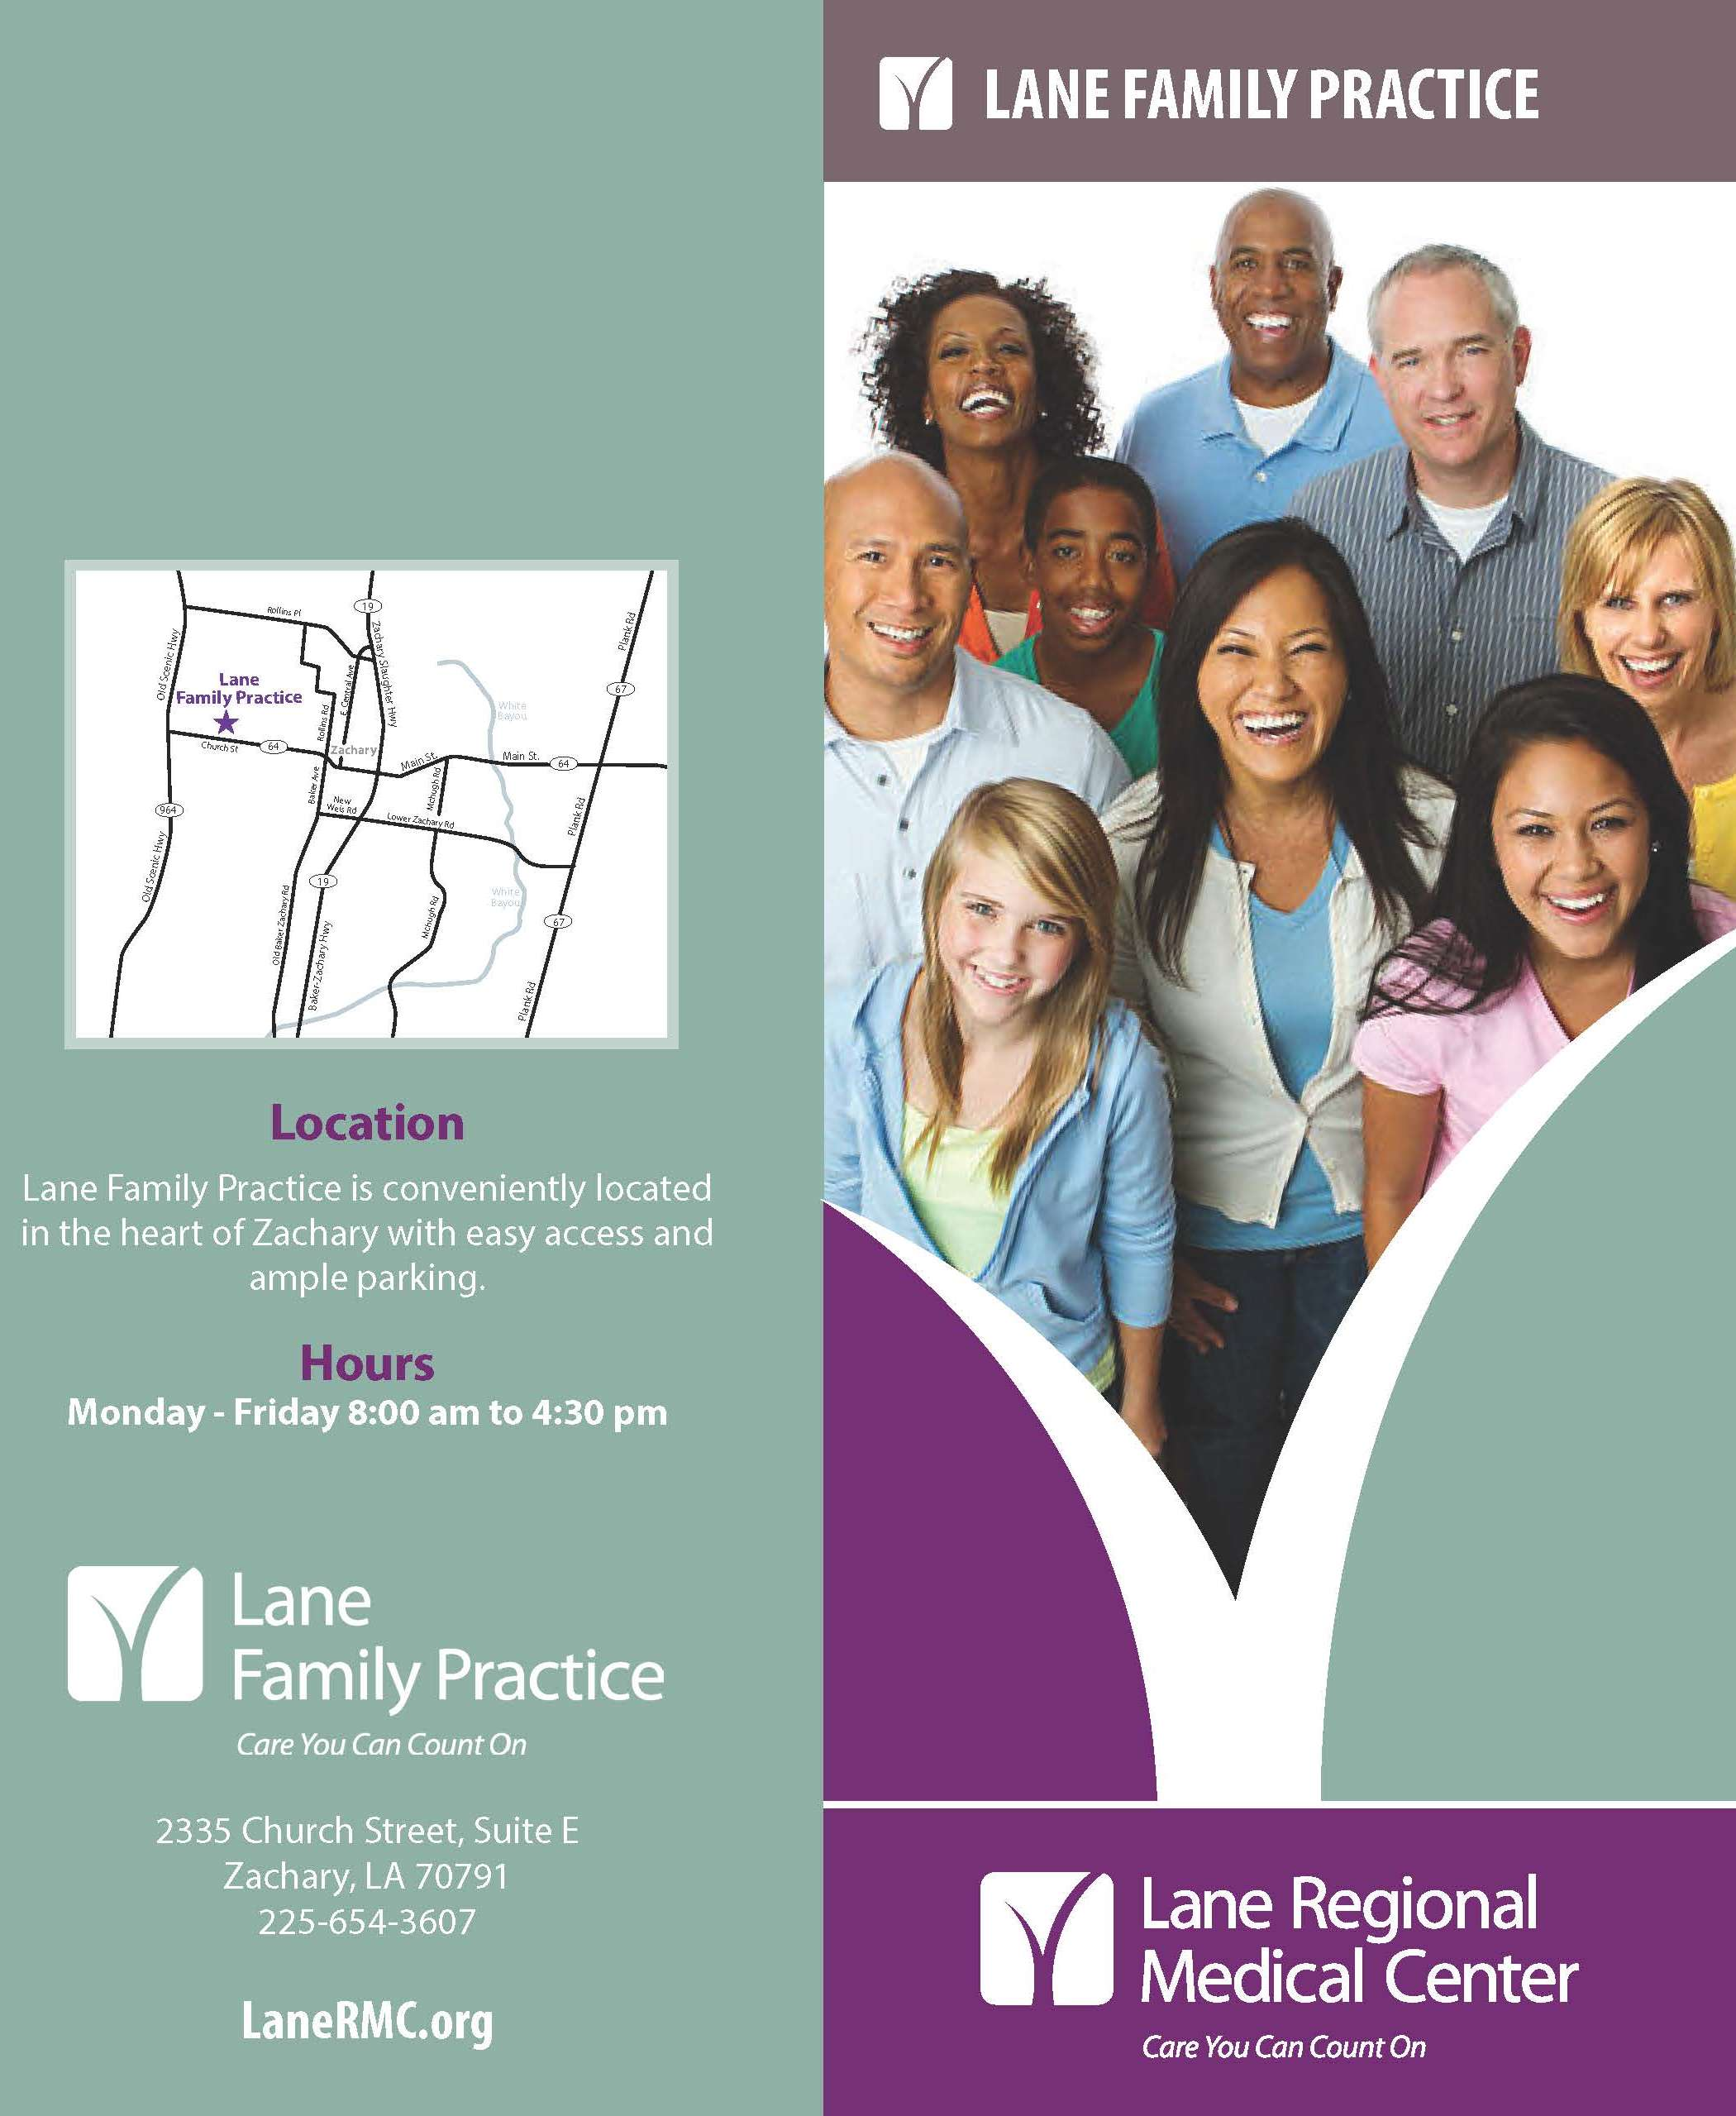 Family Practice brochure LFP G&B_Page_1